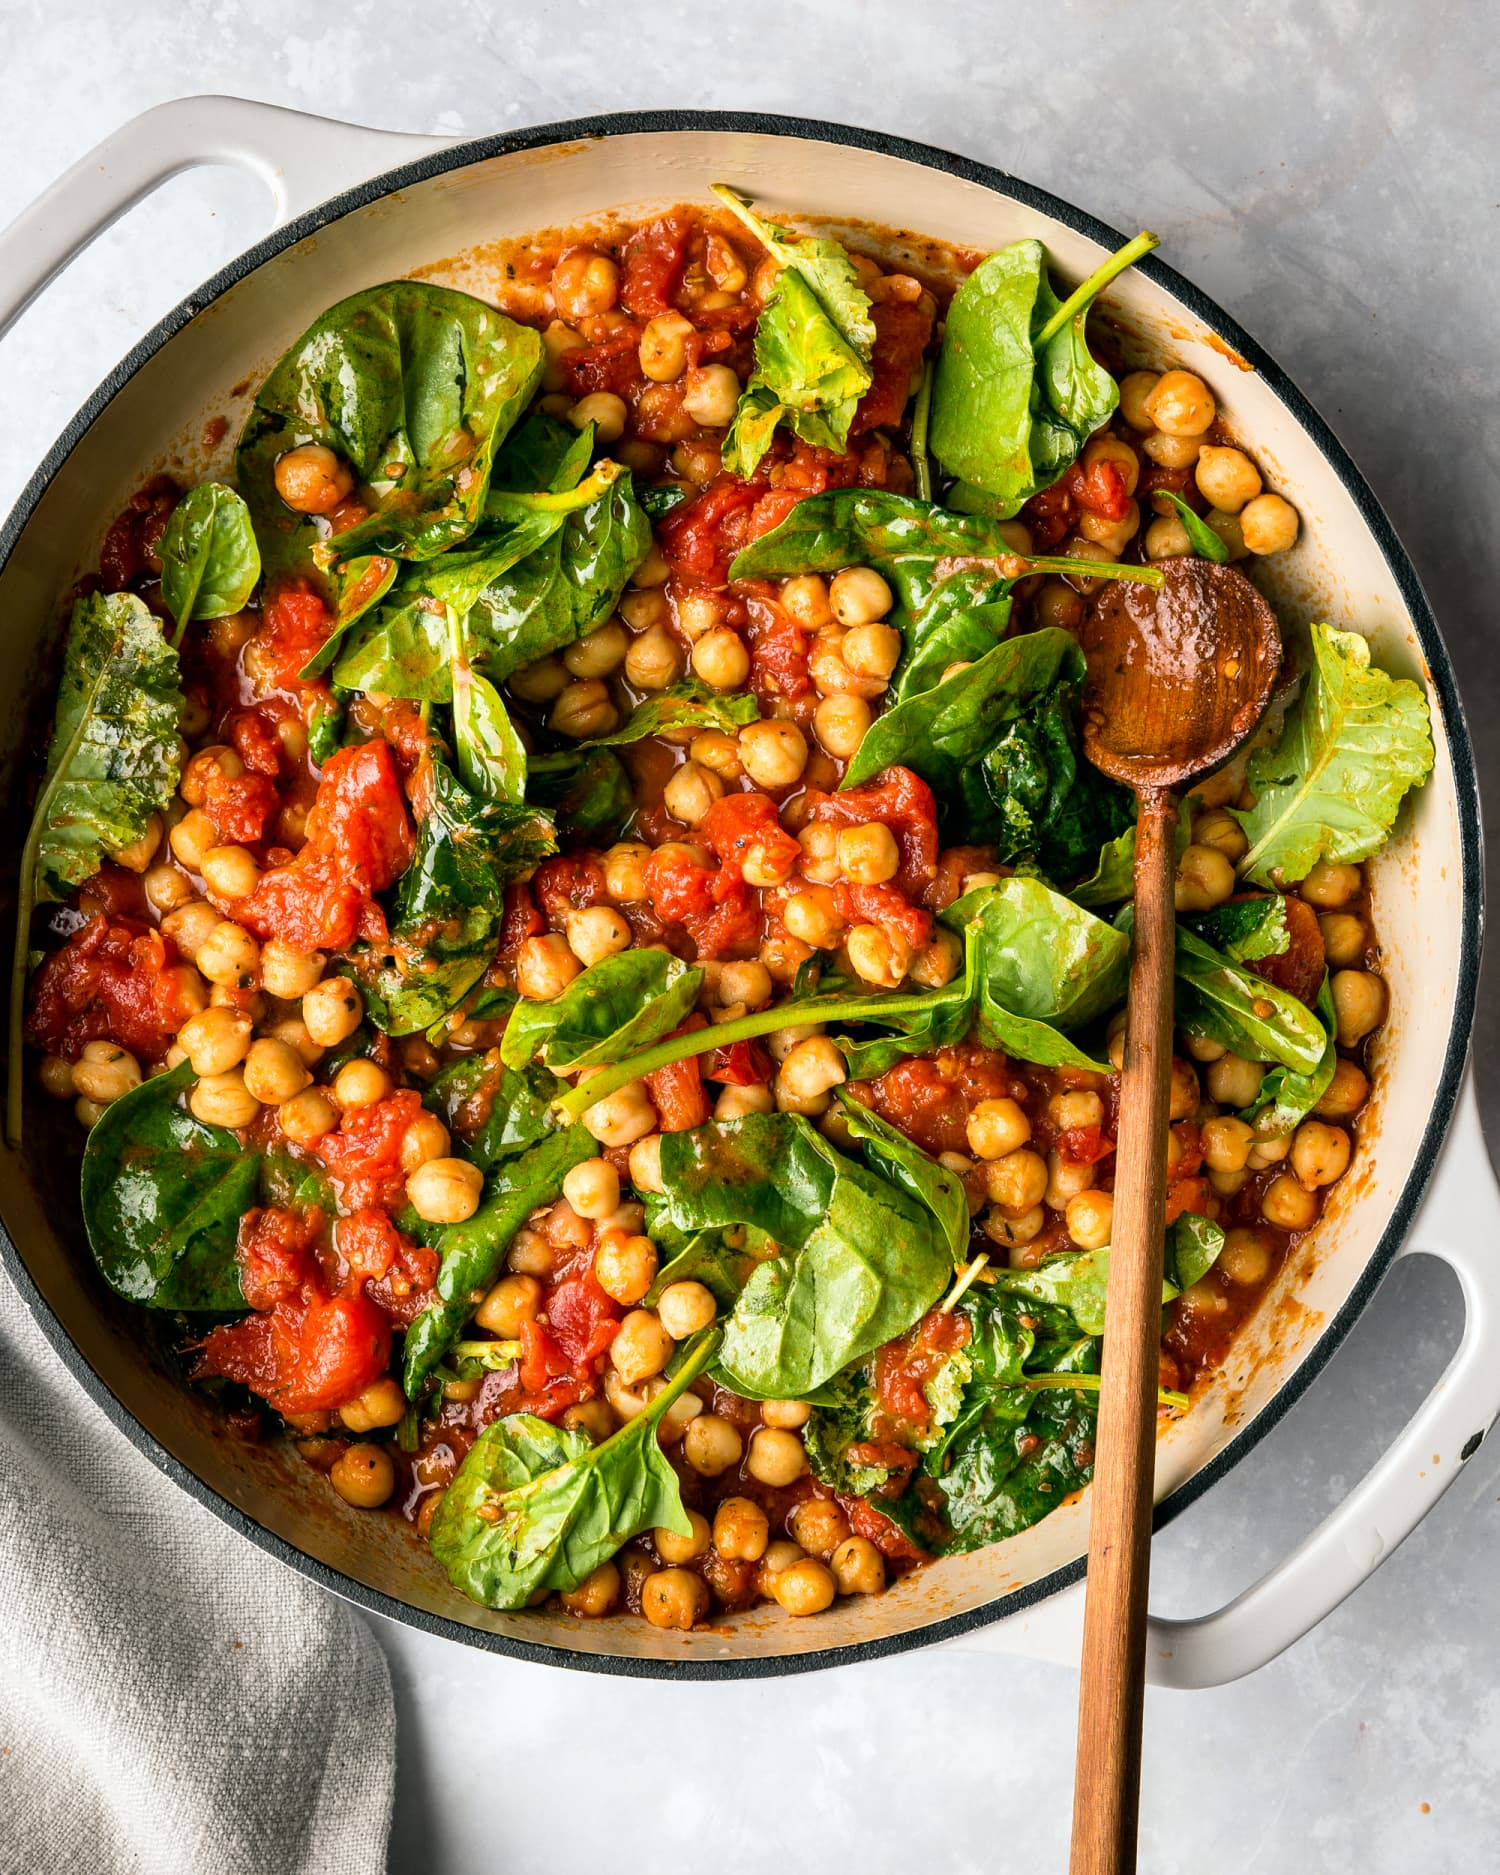 80 Easy Healthy Dinner Ideas You'll Want to Make on Repeat